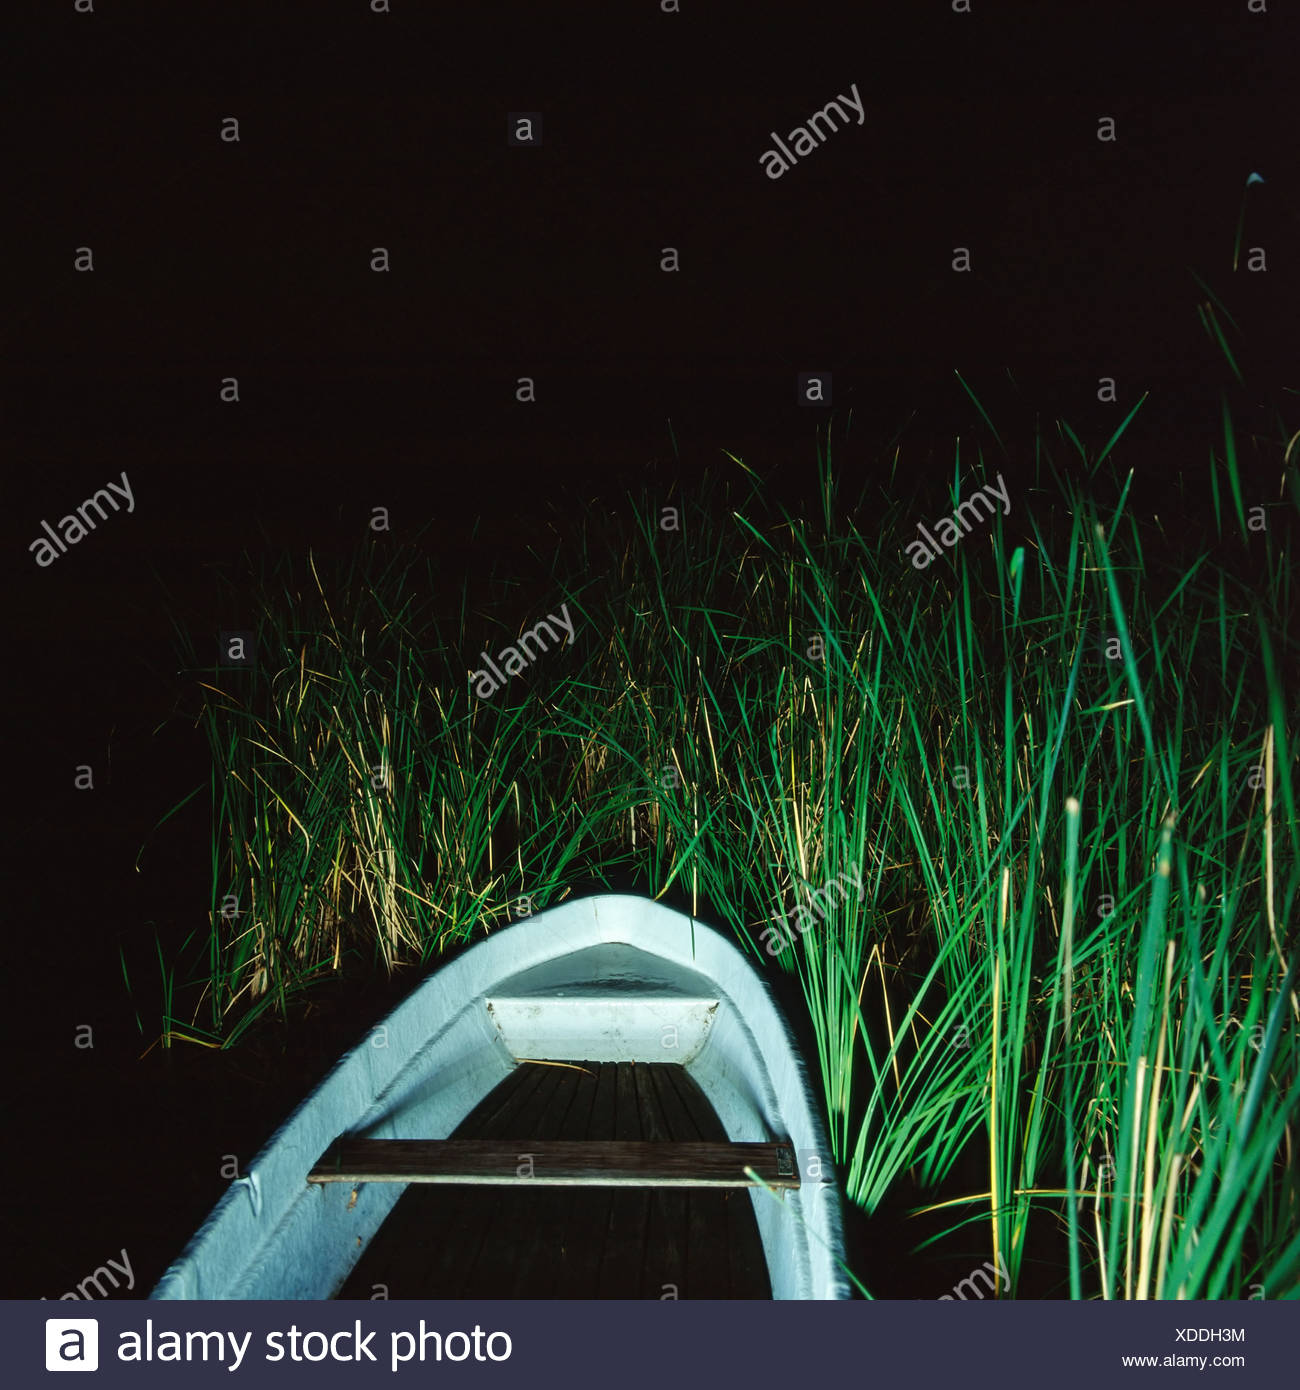 Rowboat in river bank - Stock Image